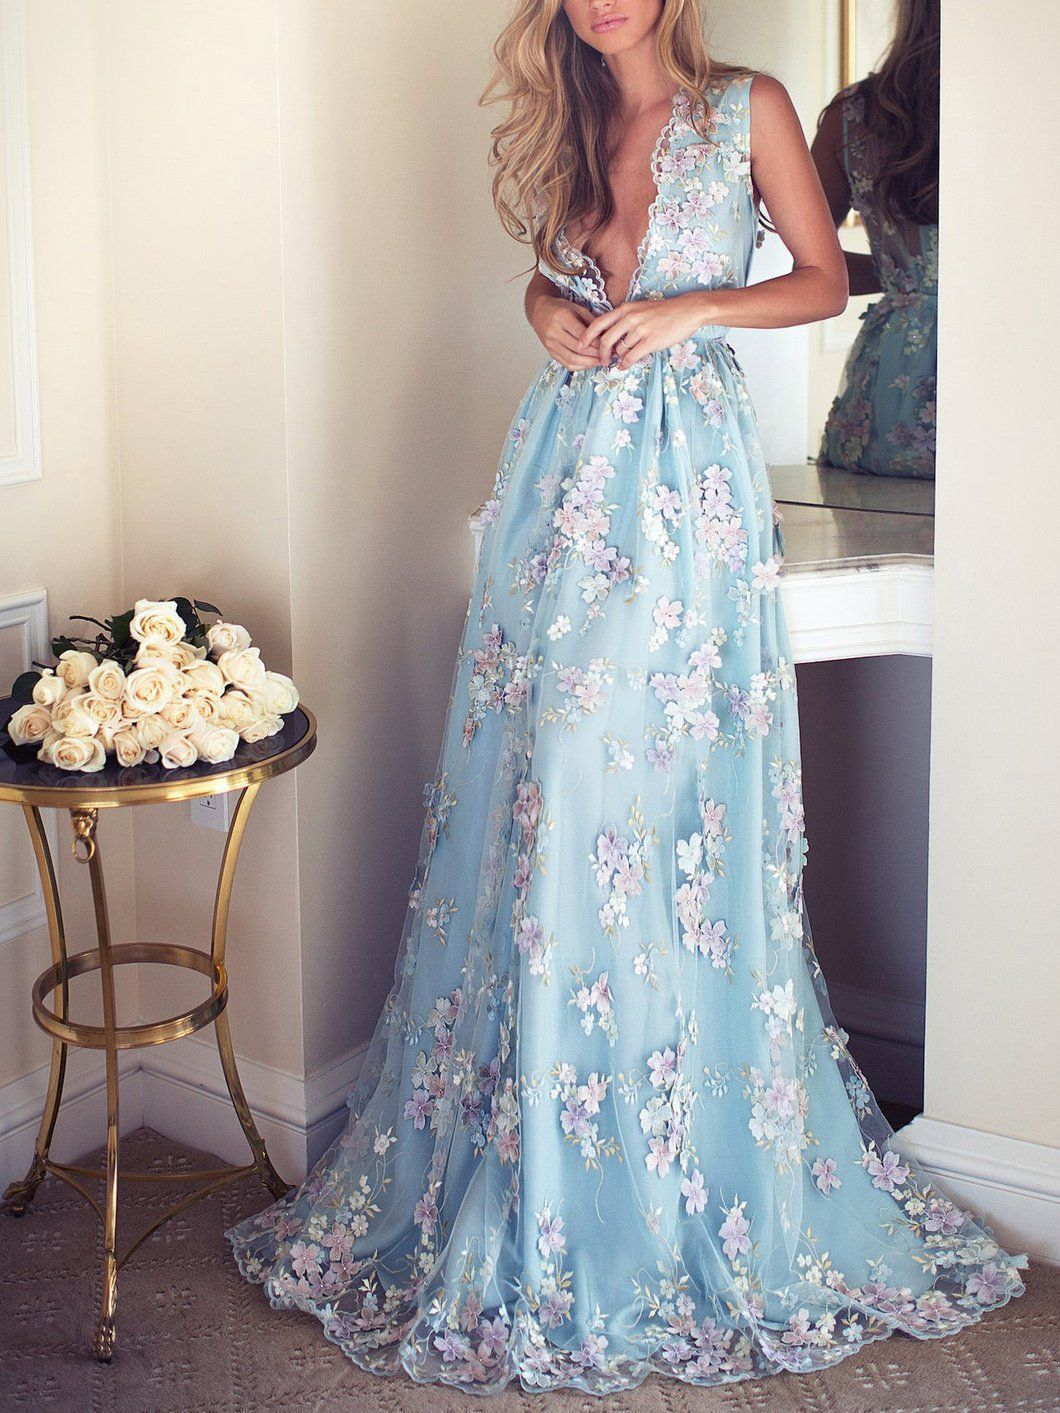 Sky blue floral prom dresses see through embroidery formal dress